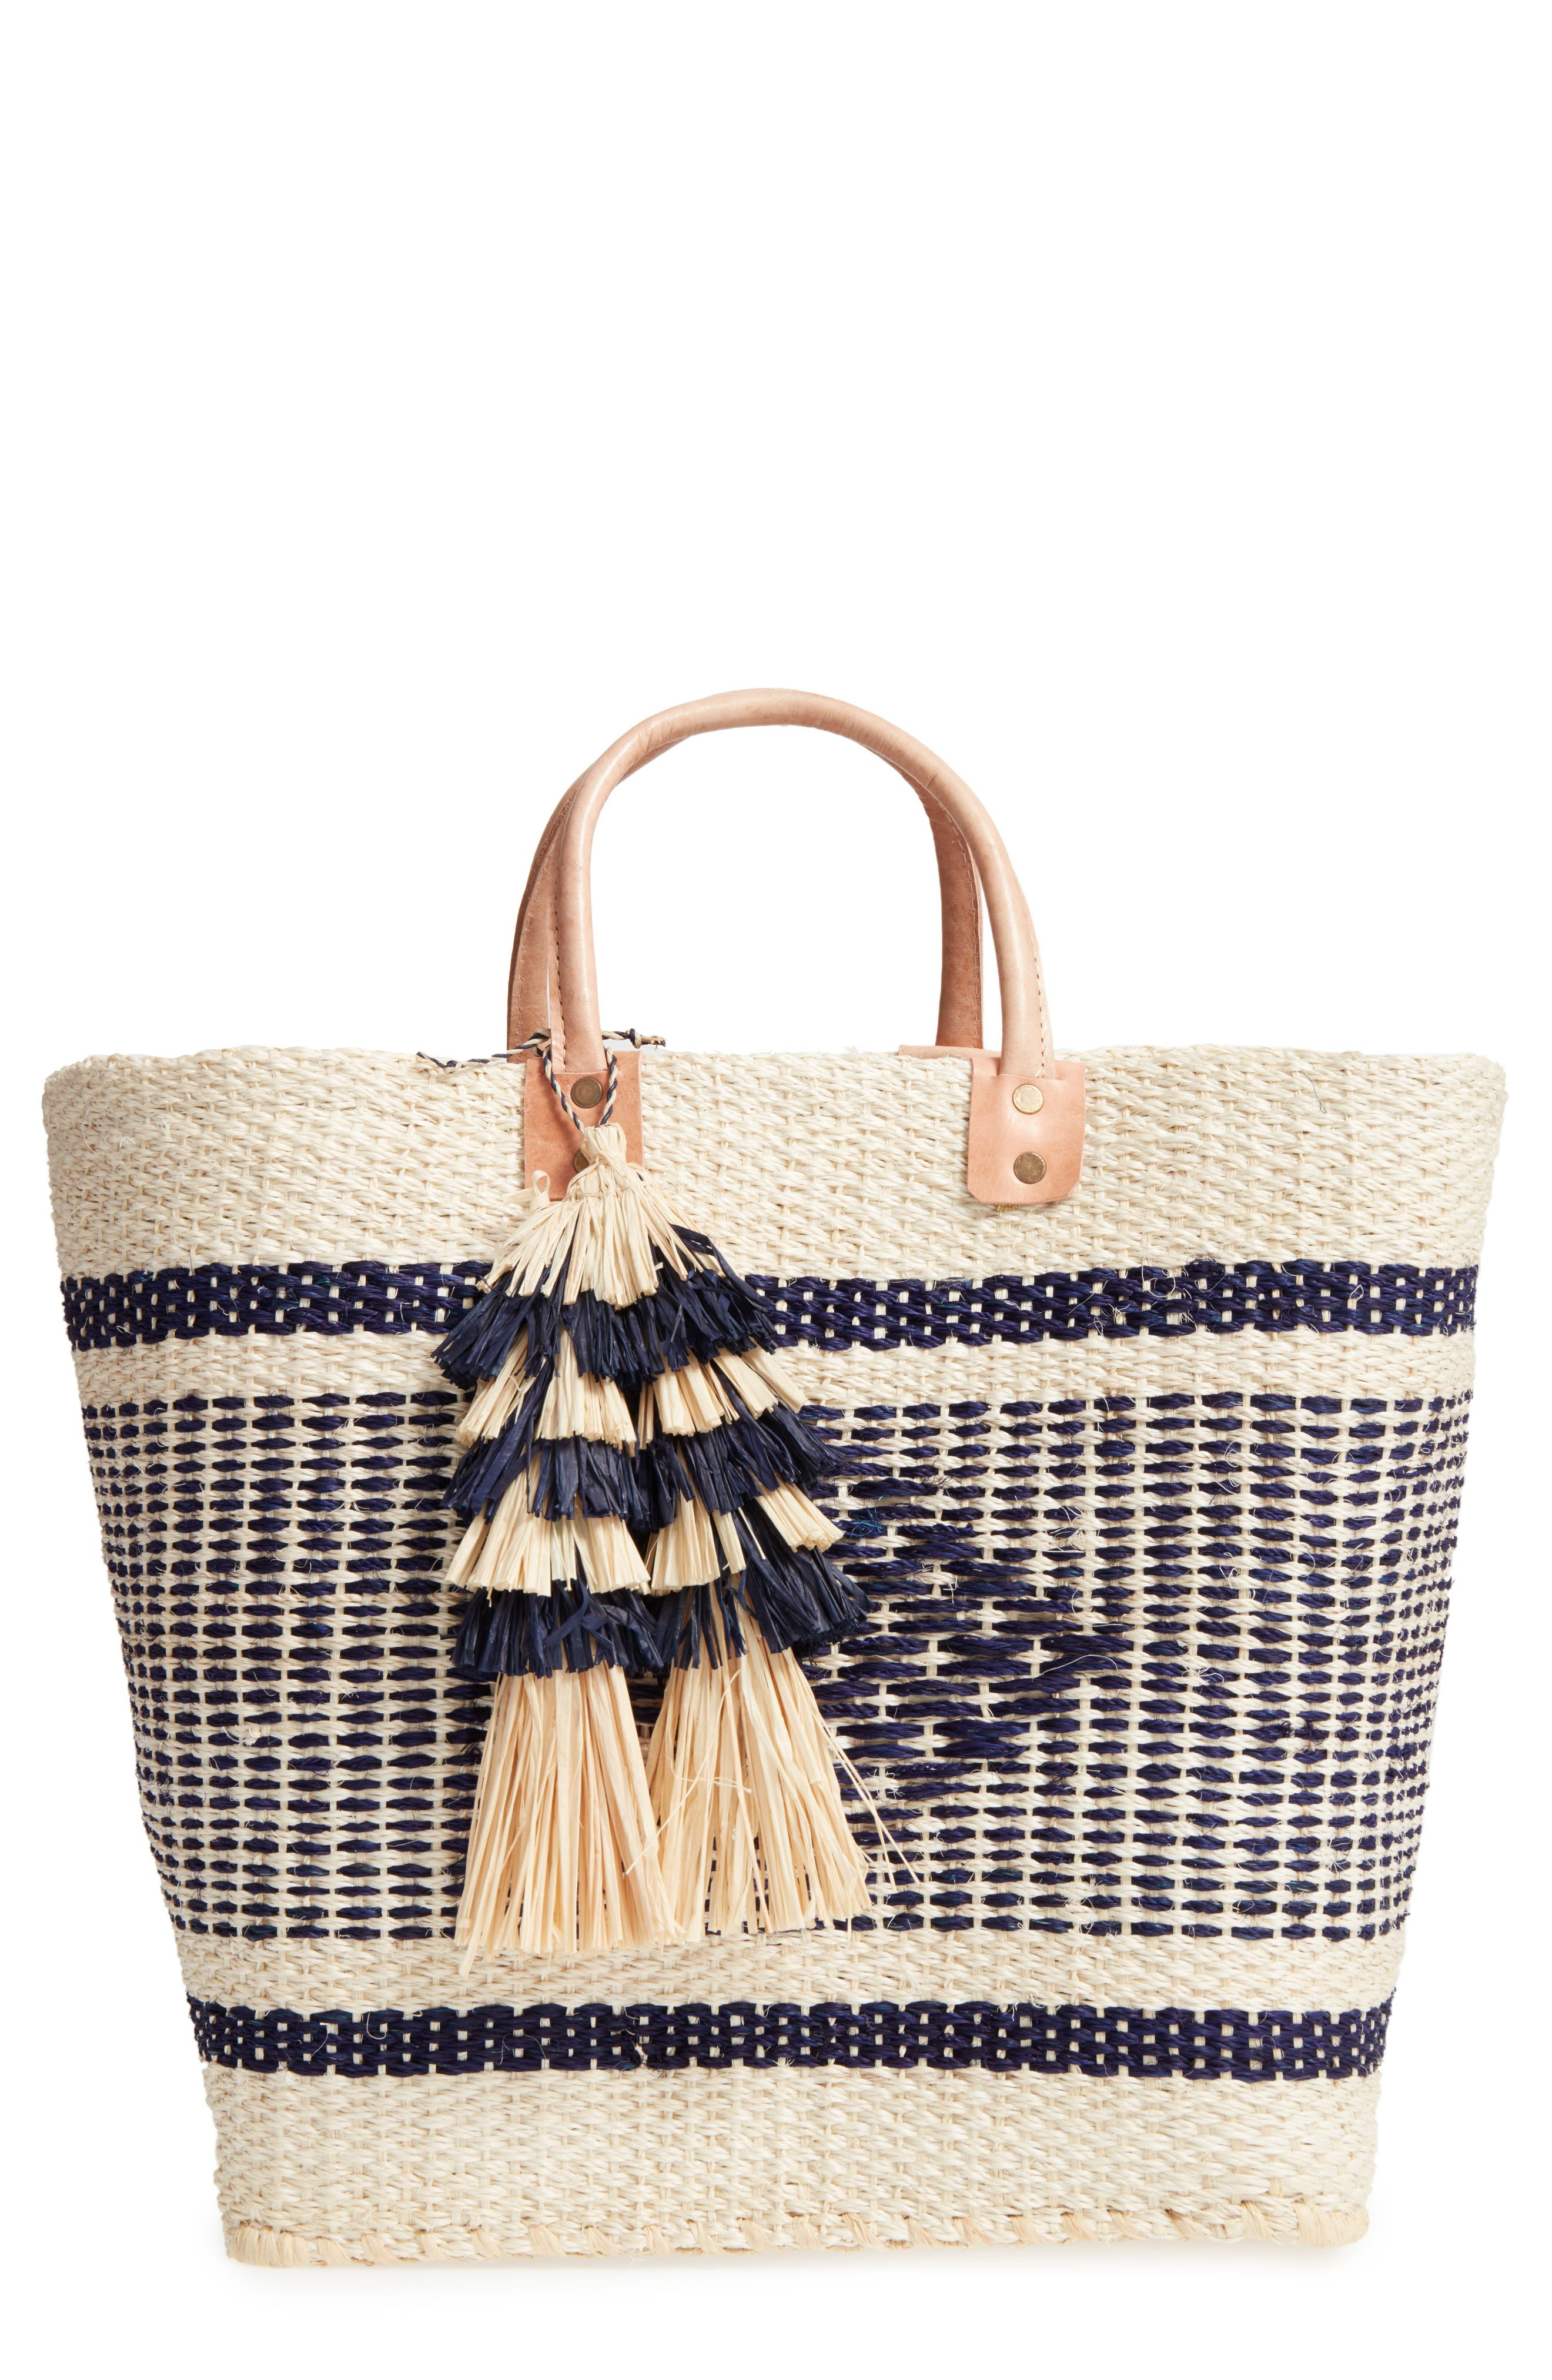 'Ibiza' Woven Tote with Tassel Charms,                         Main,                         color, 200